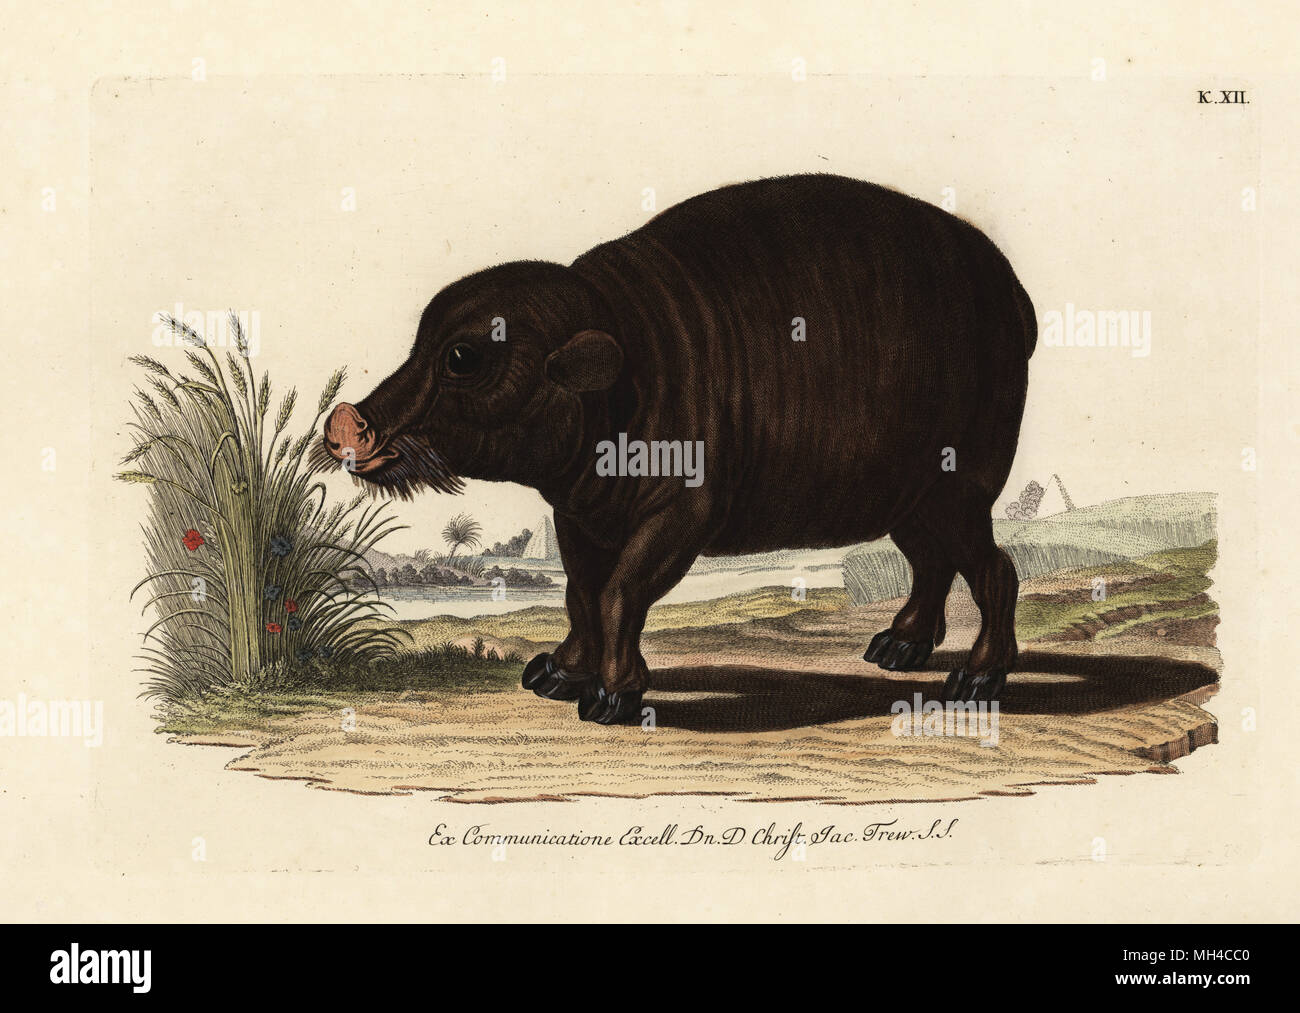 Nile hippopotamus, Hippopotamus amphibius. Vulnerable. L'Hippopotame amphibie du Nil. Handcoloured copperplate engraving from Georg Wolfgang Knorr's Deliciae Naturae Selectae of Kabinet van Zeldzaamheden der Natuur, Blusse and Son, Nuremberg, 1771. Specimens from a Wunderkammer or Cabinet of Curiosities owned by Dr. Christoph Jacob Trew in Nuremberg. - Stock Image